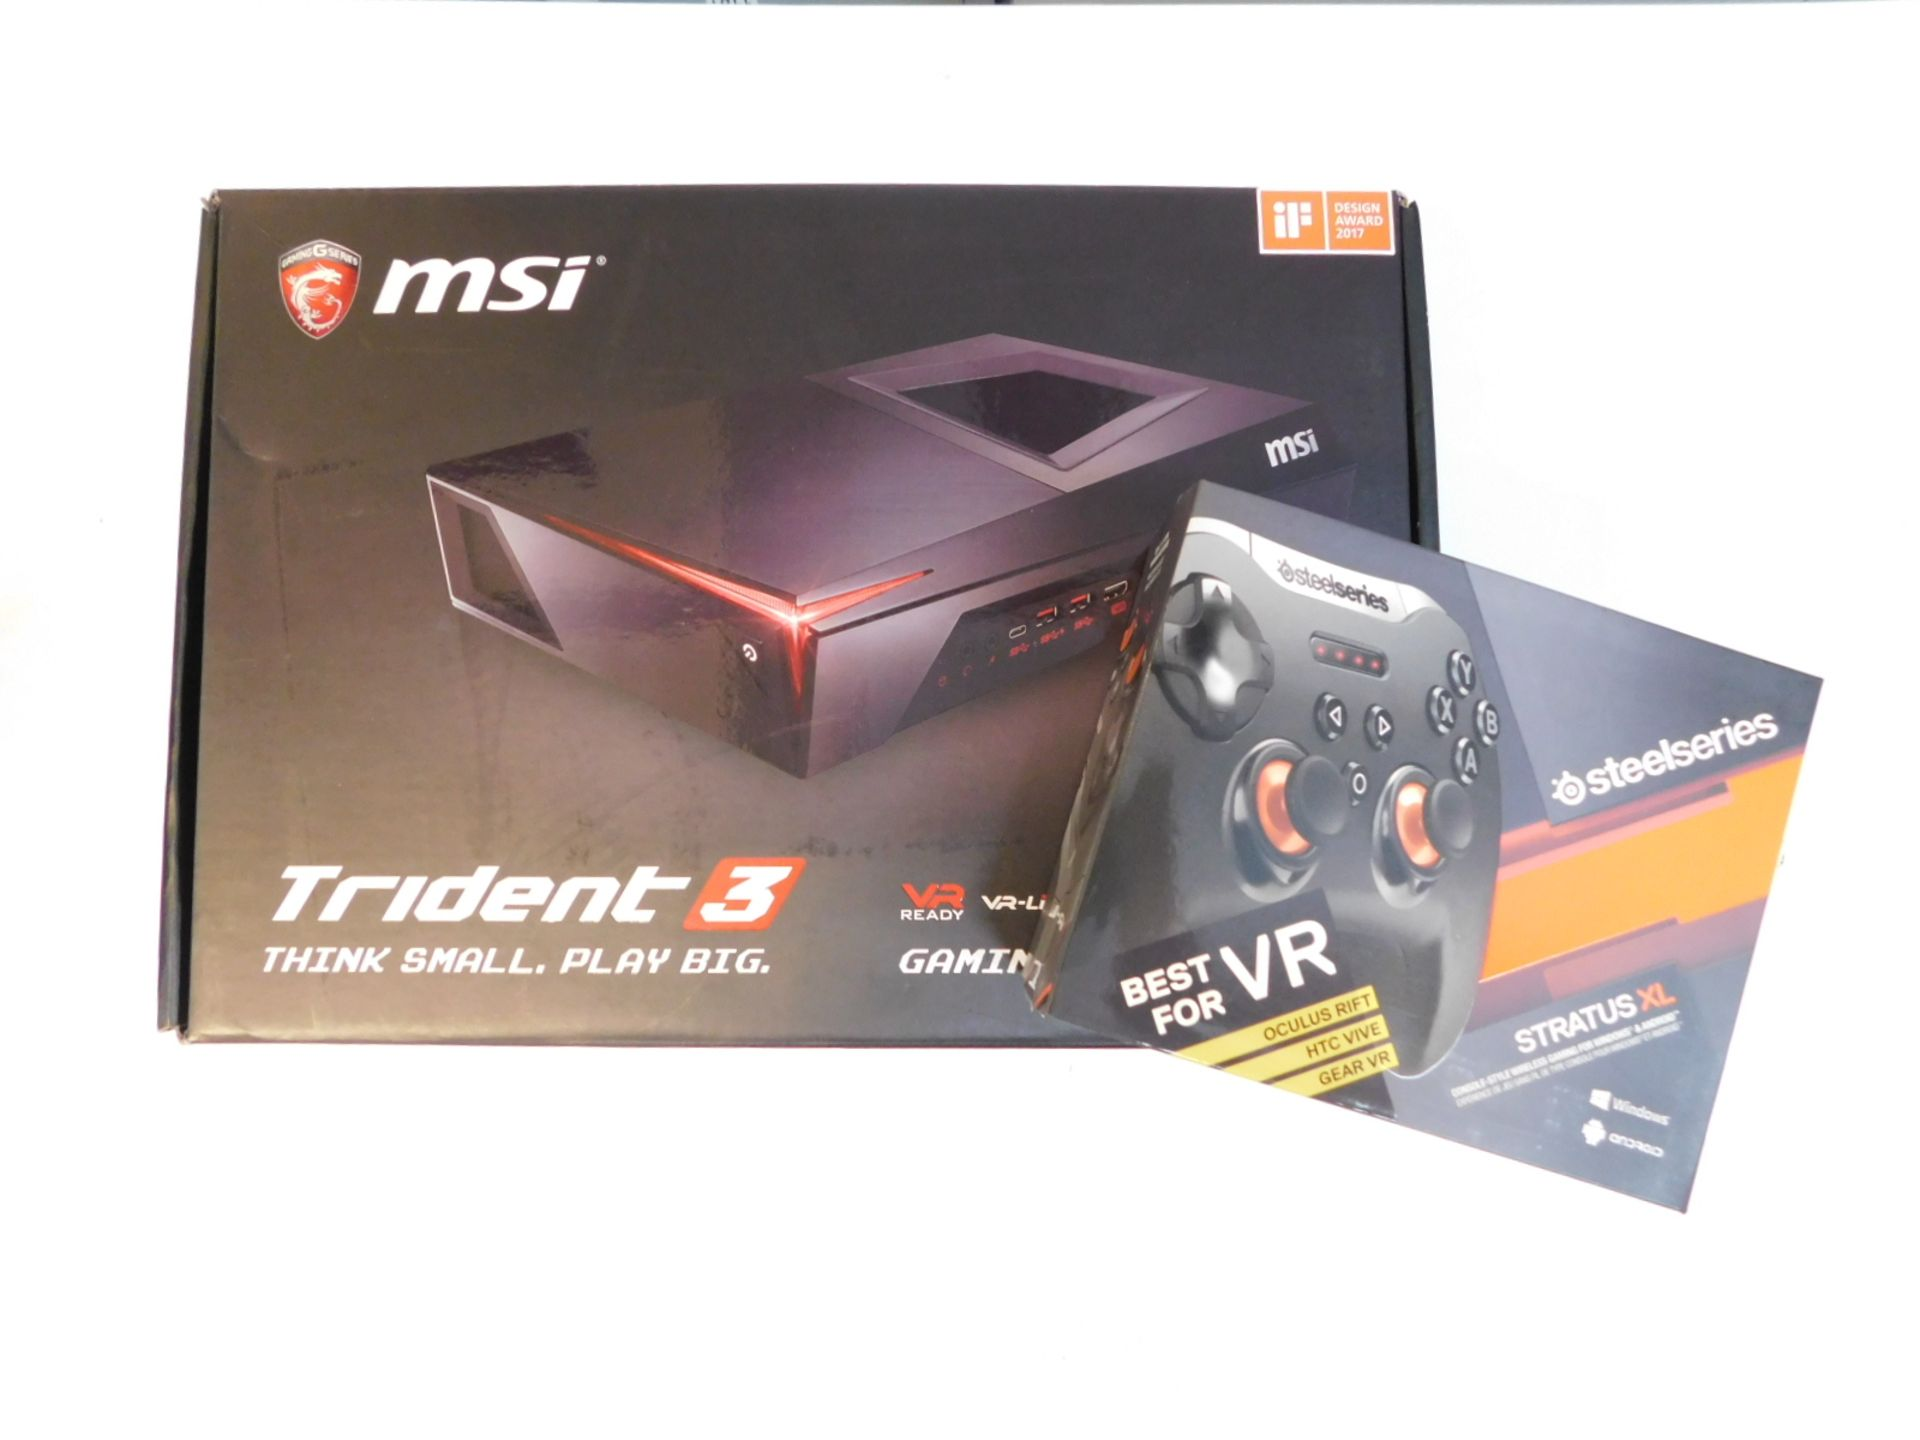 Lot 1094 - 1 BOXED MSI TRIDENT 3 GAMING DESKTOP PC WITH STRATUS XL GAME PAD, INTEL CORE I5-7400, 1TB HD, 8GB